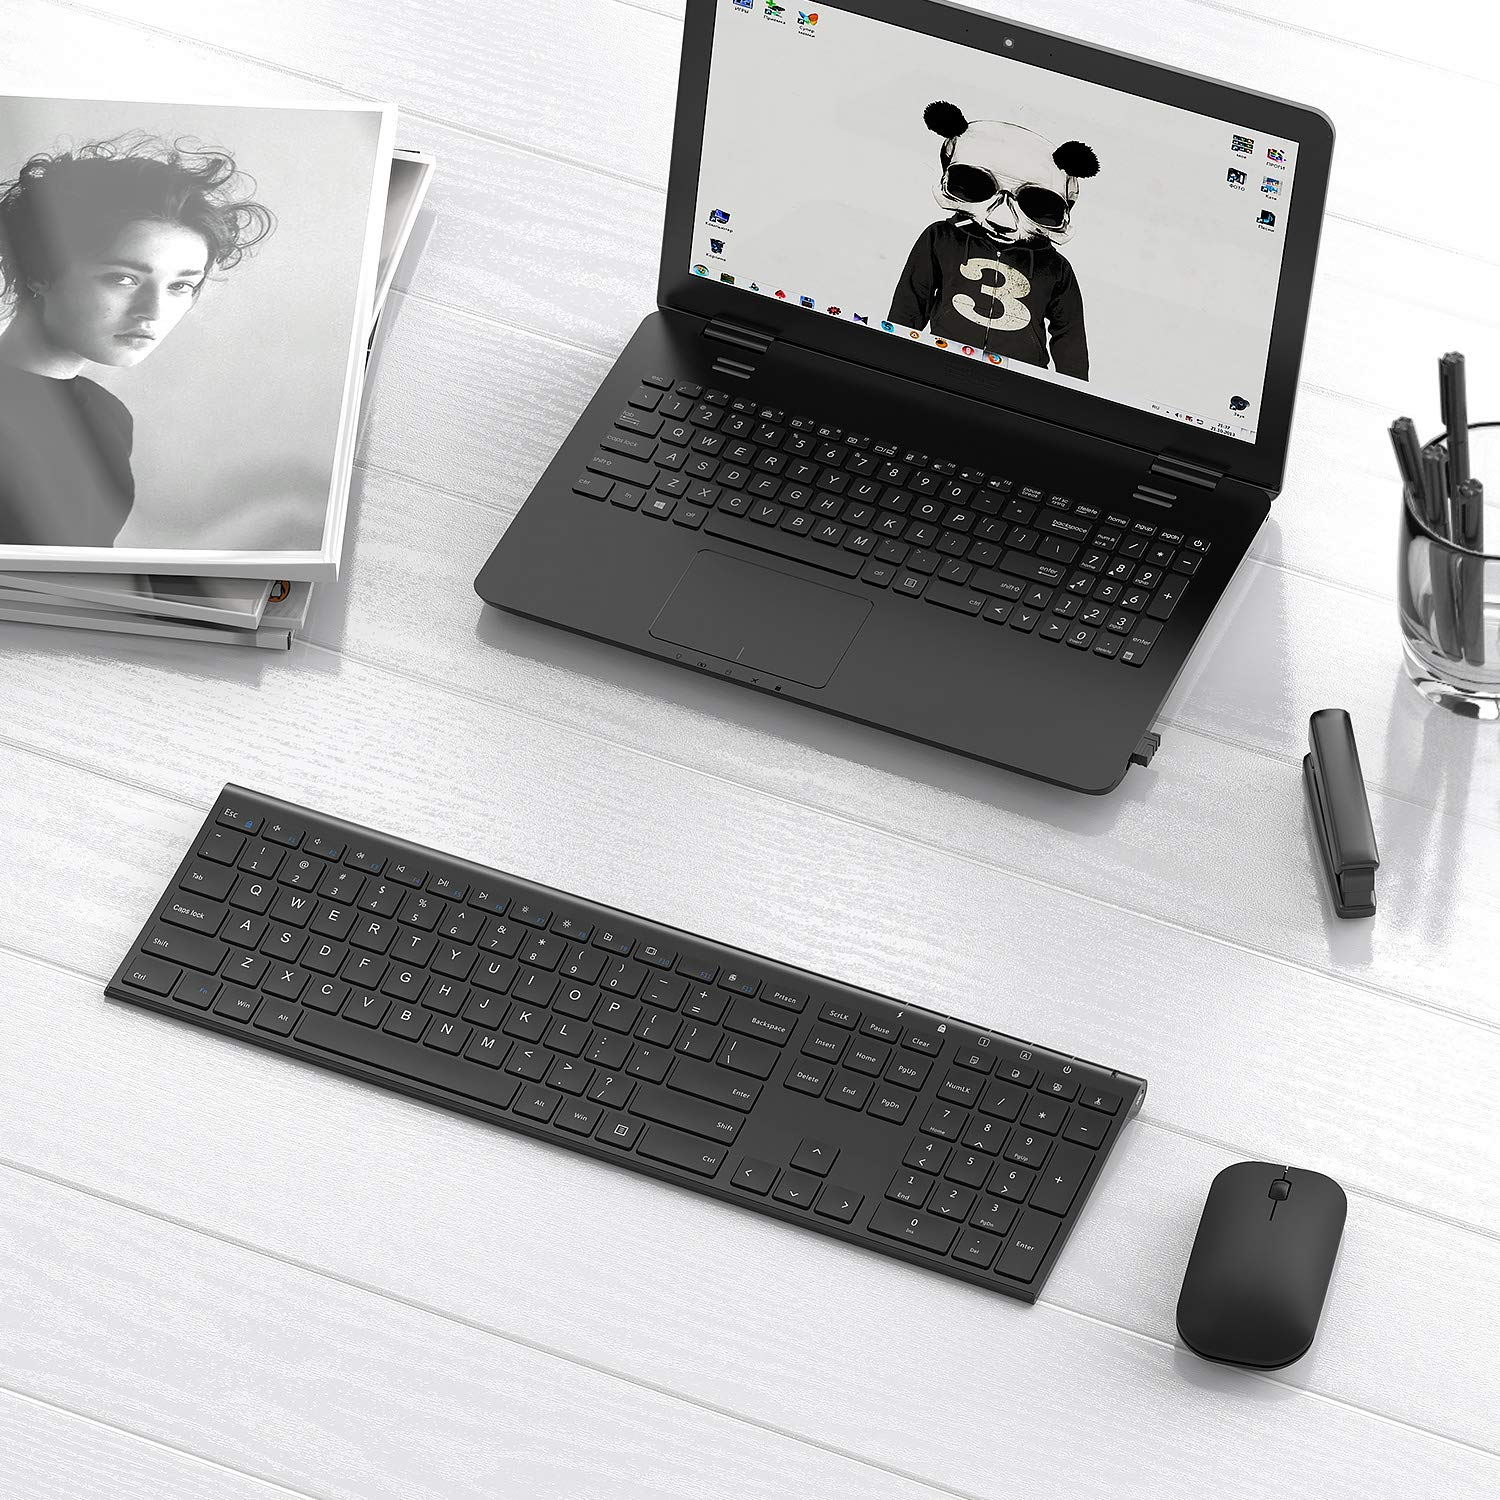 Jelly Comb B003B Dual Mode USB Wired /& Bluetooth Keyboard with Touchpad Rechargeable for Windows Android Tablet Smartphone Surface and More-Updated Black and Silver Foldable Bluetooth Keyboard